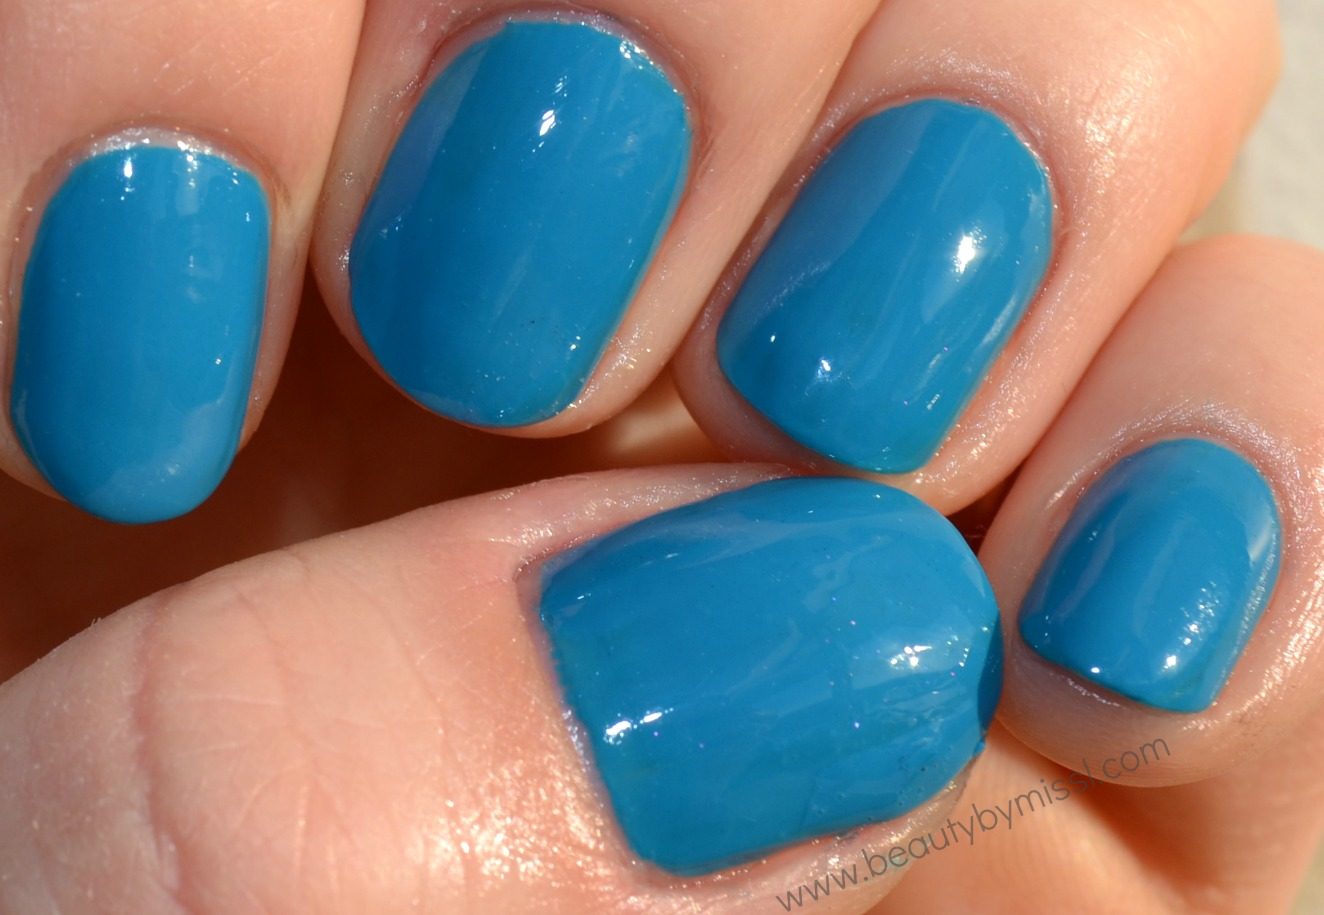 swatces, notd, manicure, nails of the day